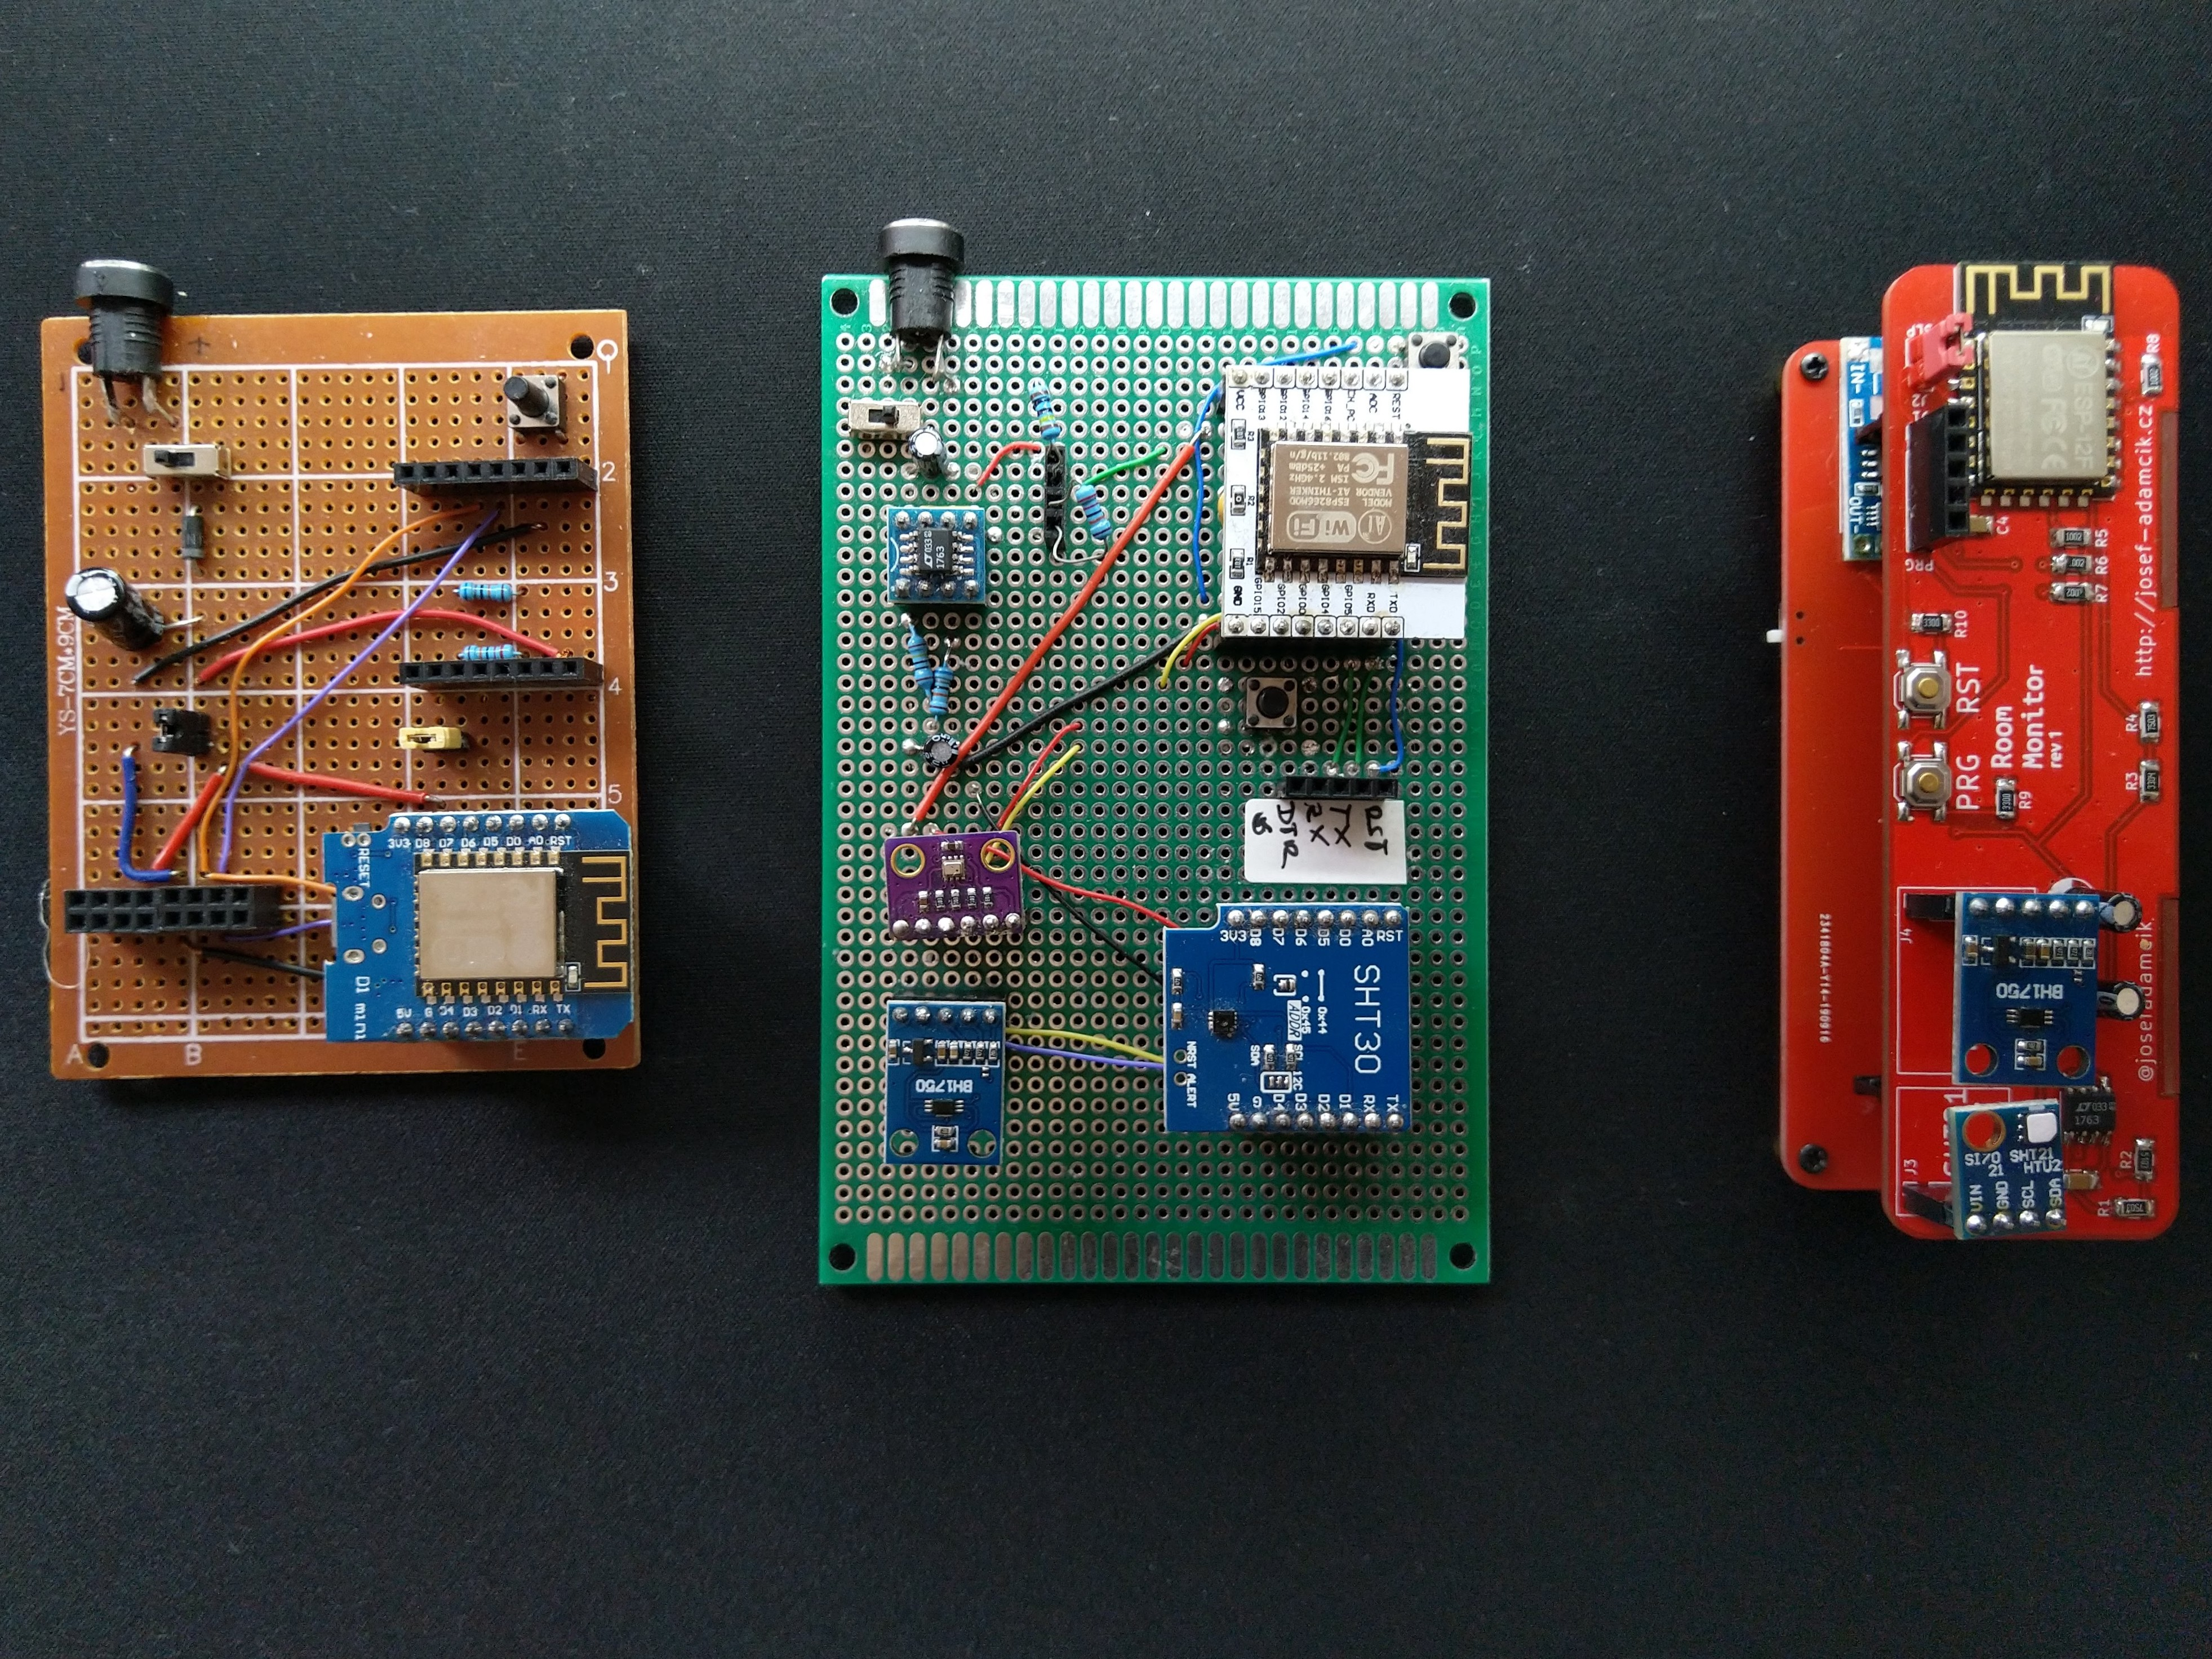 RoomMonitor - prototypes and the PCB version